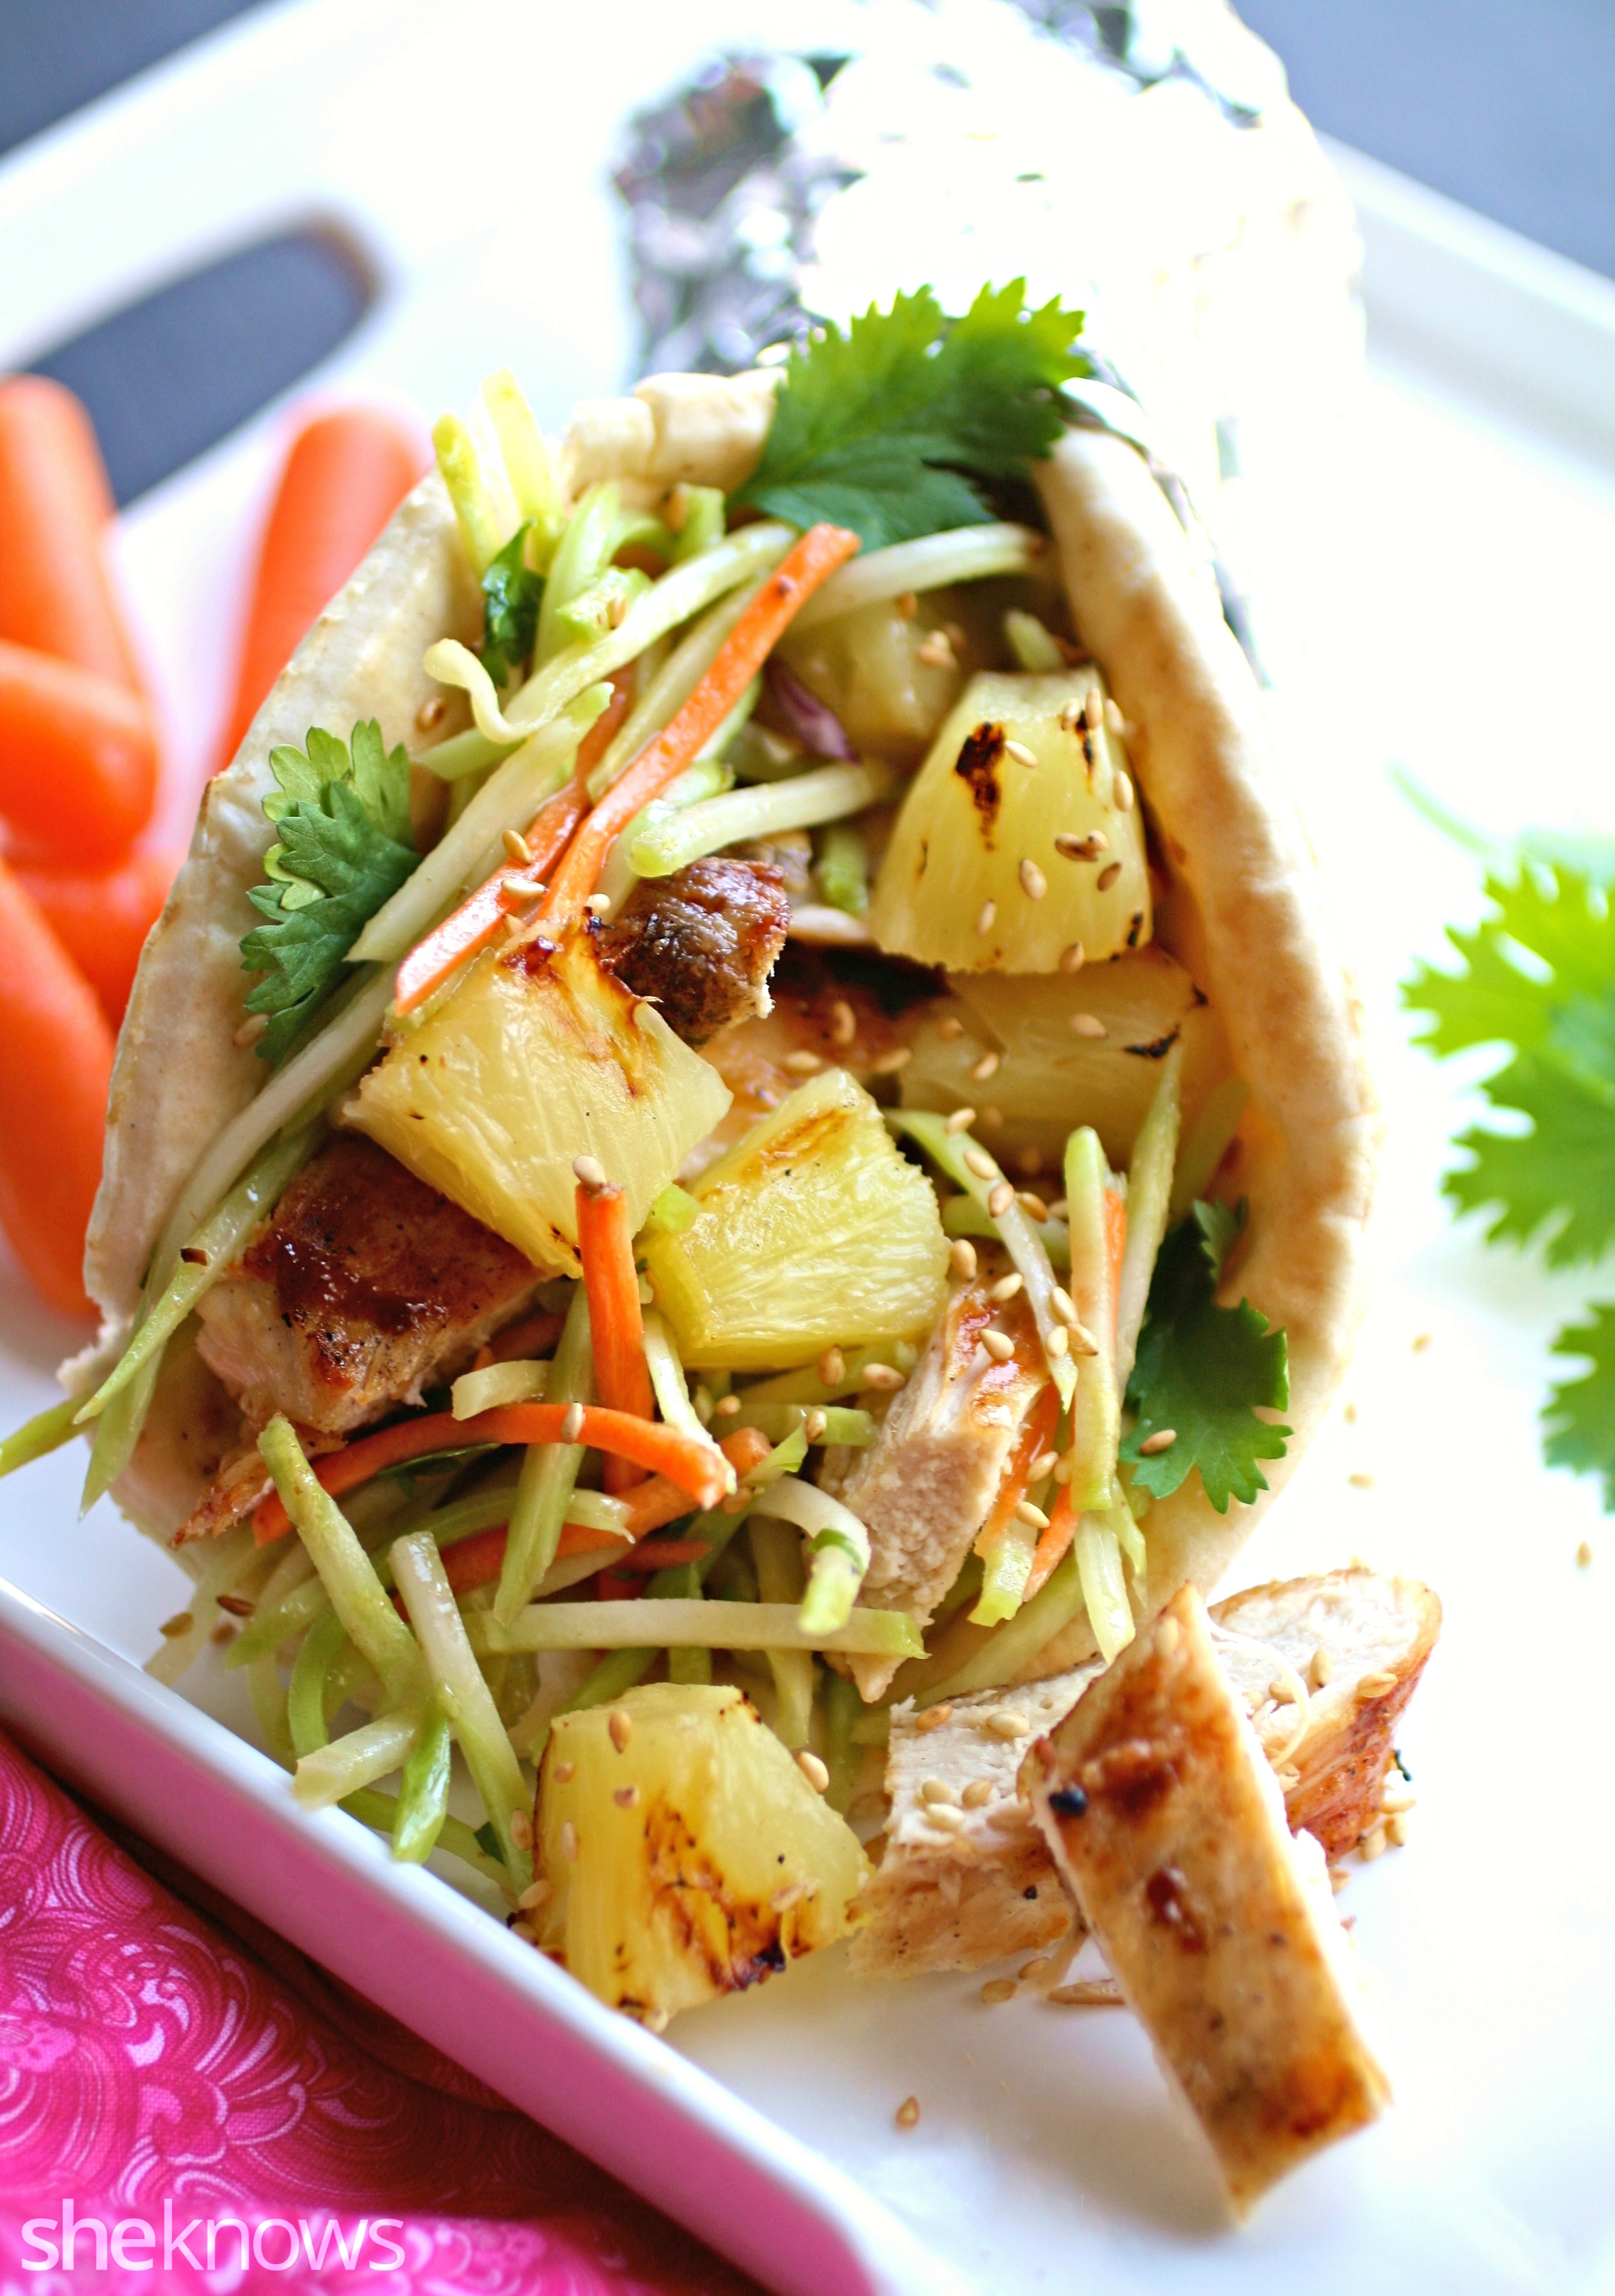 Grilled chicken and grilled pineapple go together splendidly (think of ...